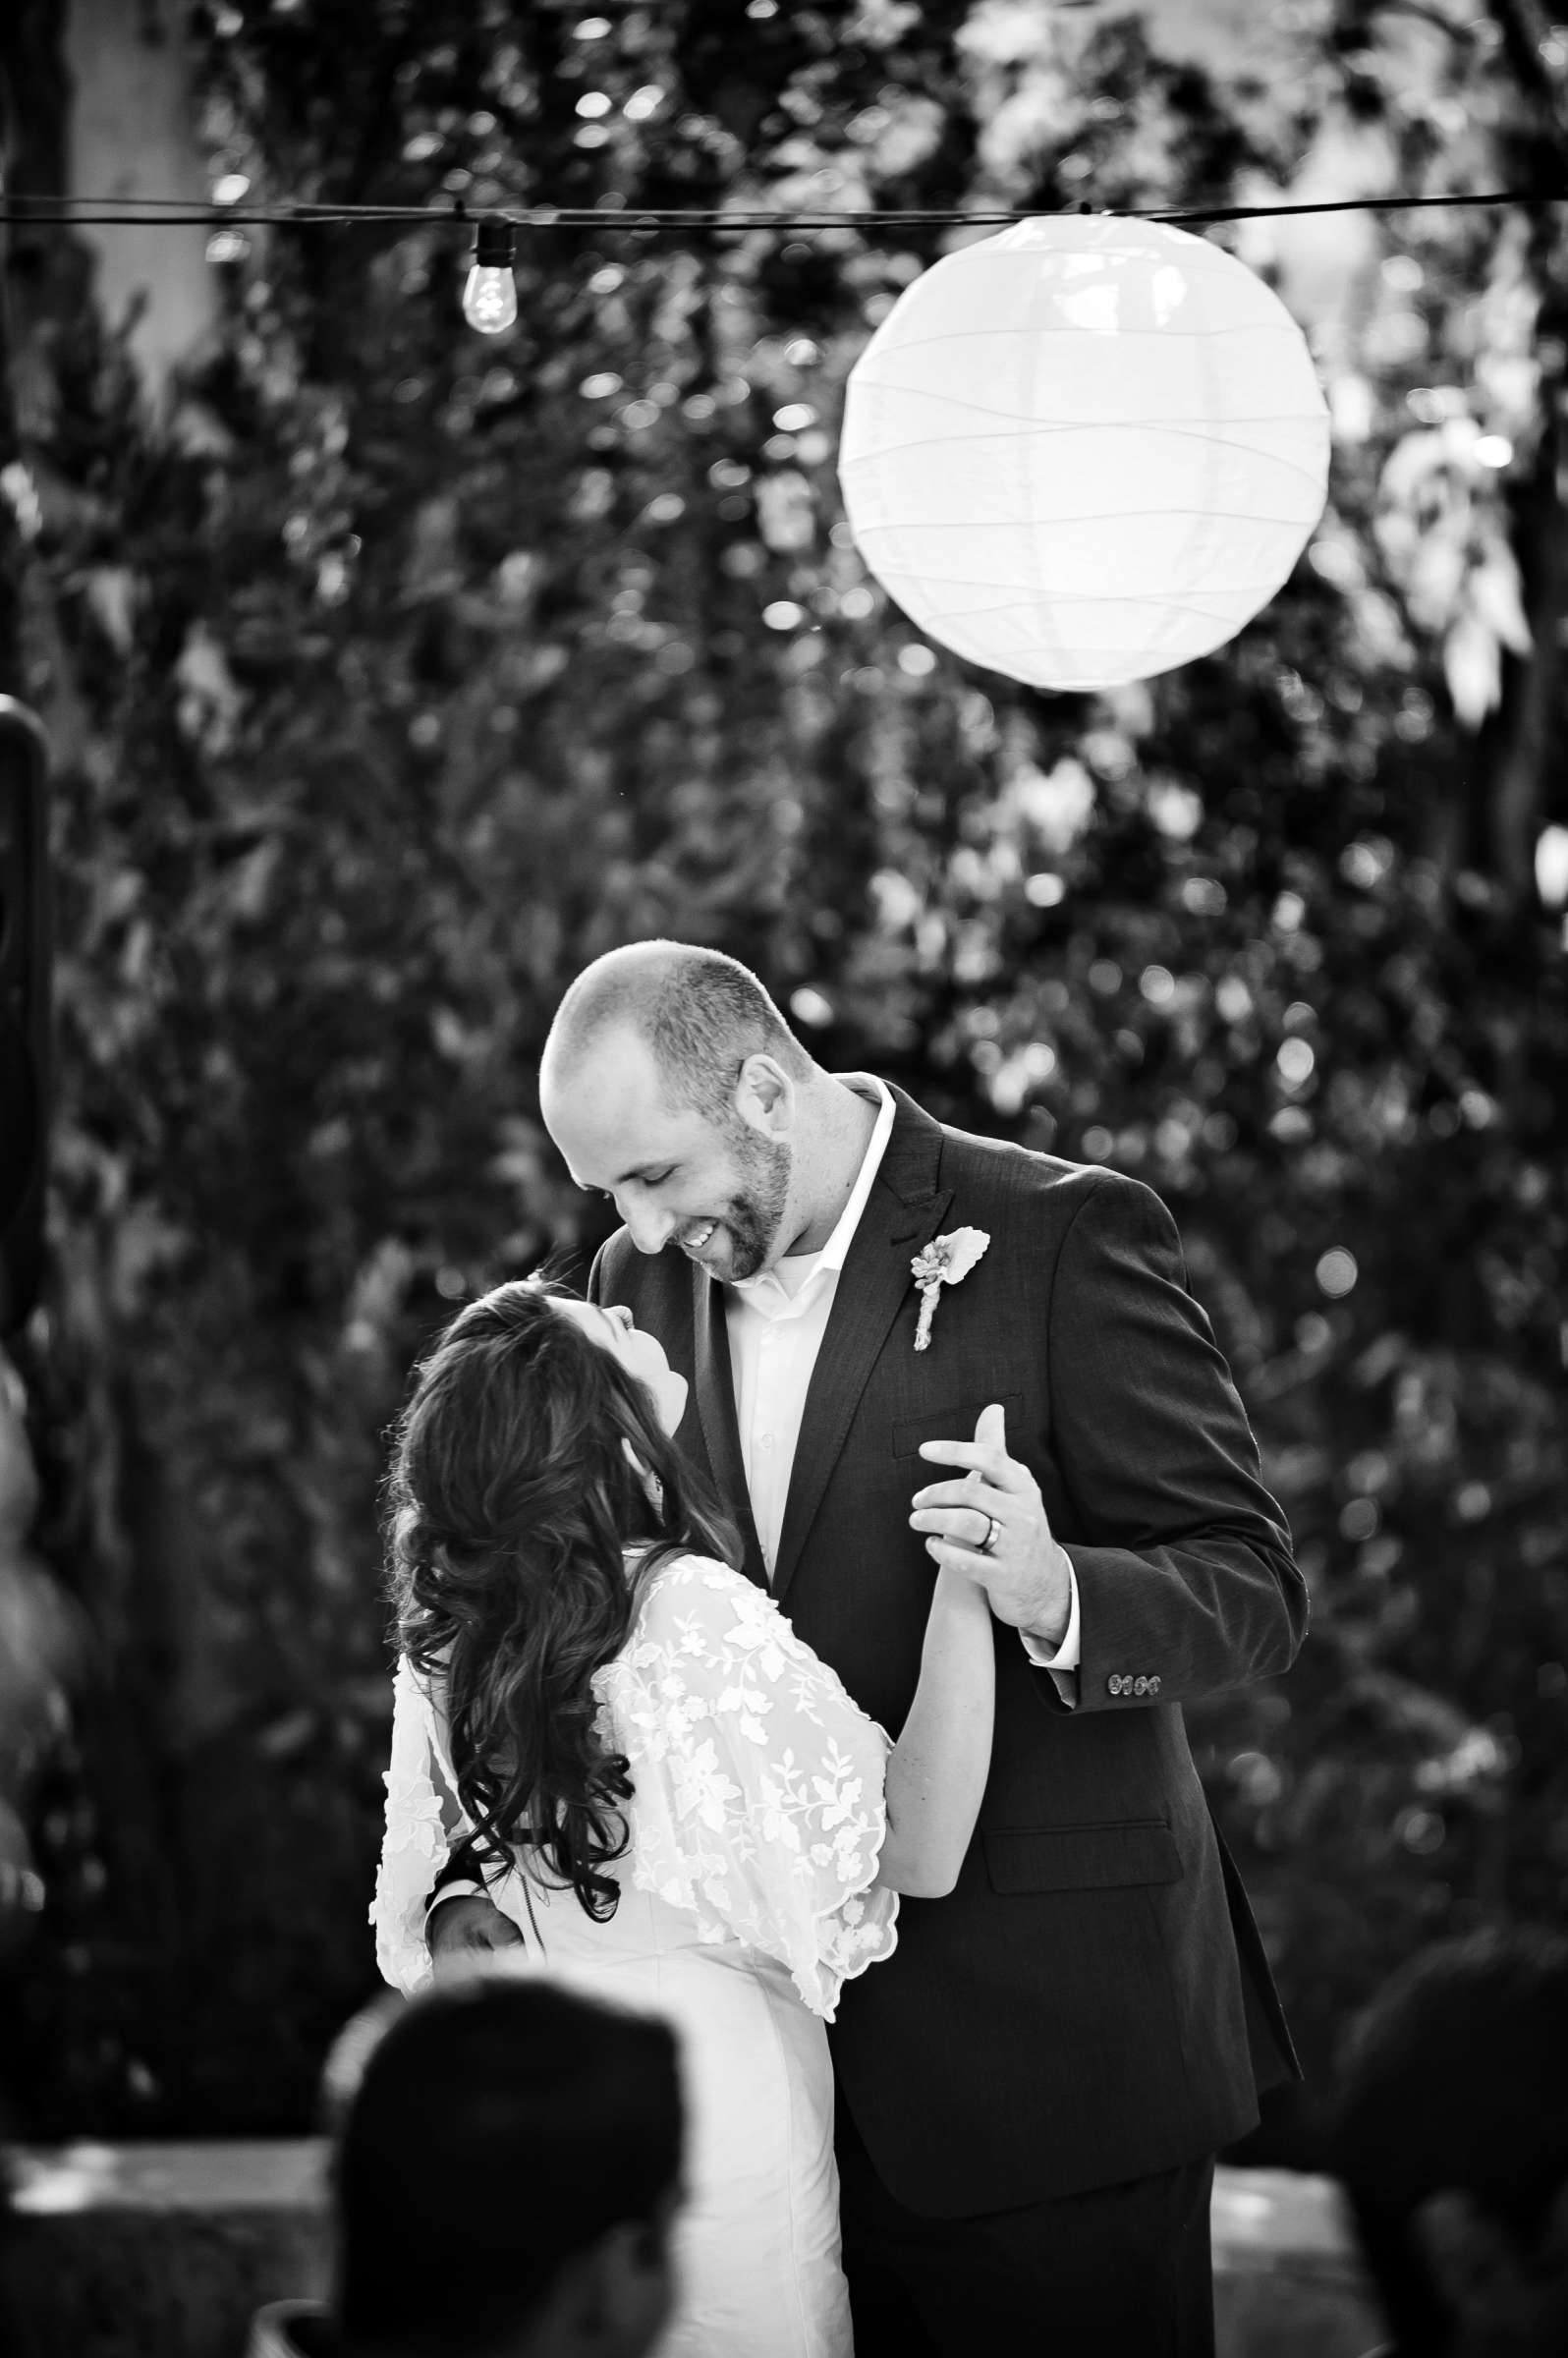 Leo Carrillo Ranch Wedding coordinated by Weddings by Lisa Nicole, Bethany and Aaron Wedding Photo #39 by True Photography